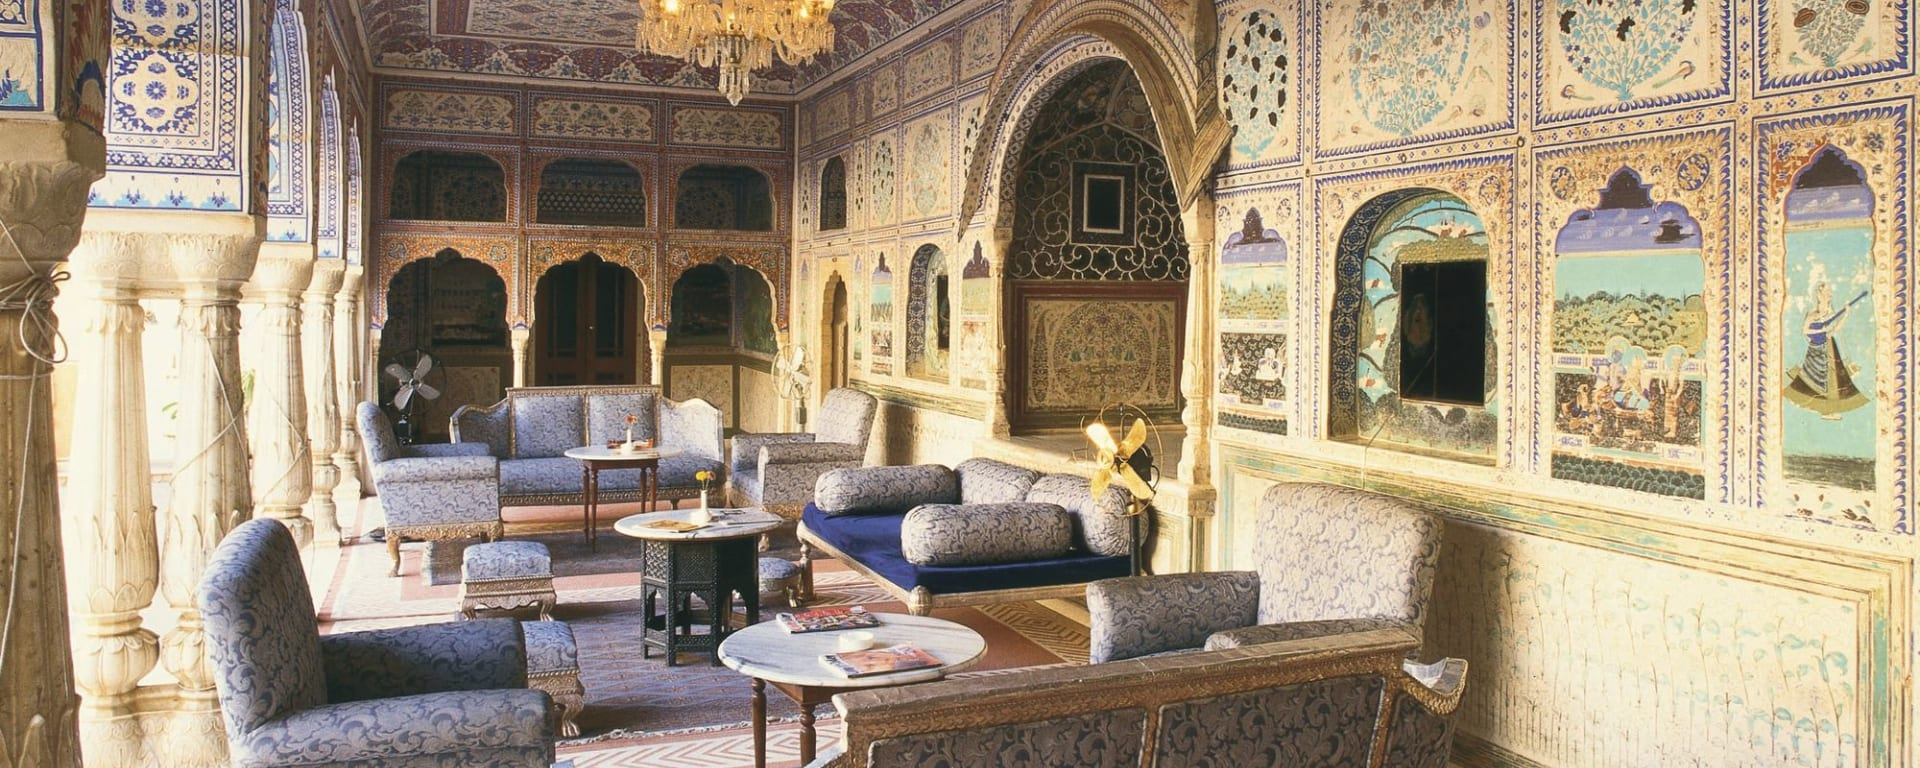 Samode Palace in Jaipur: Lounge